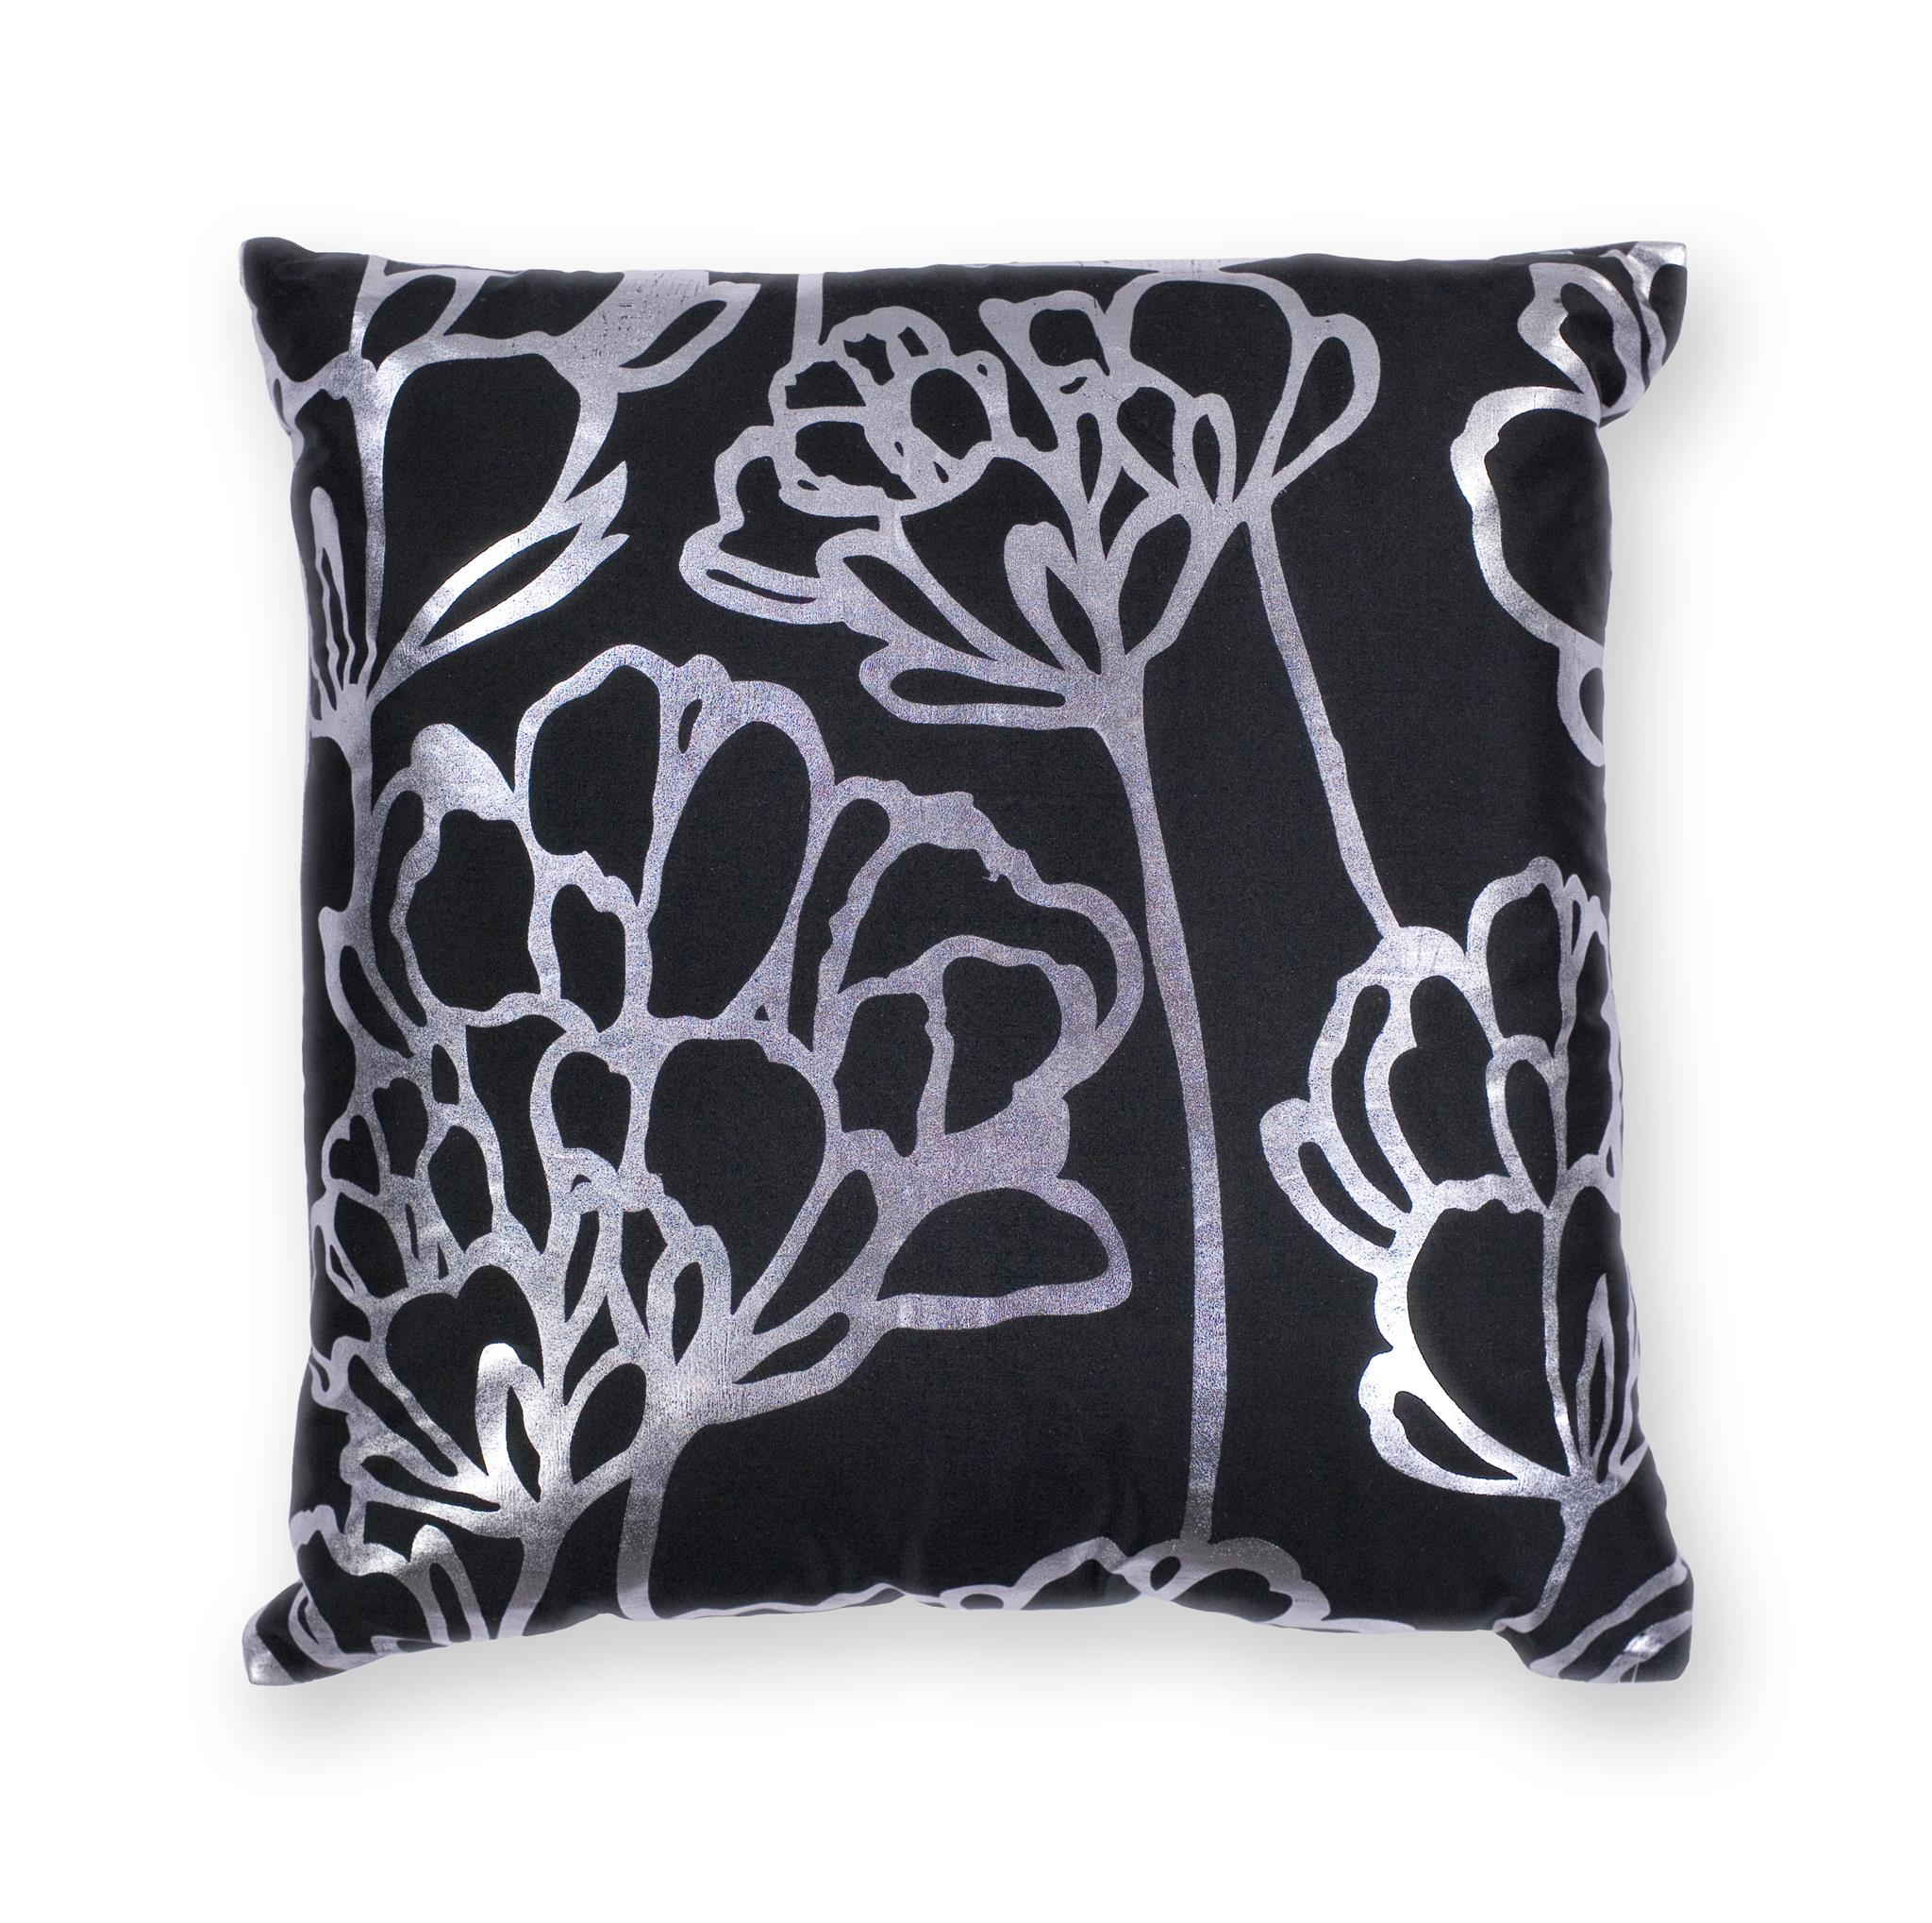 L299 Black Blossom Pillow